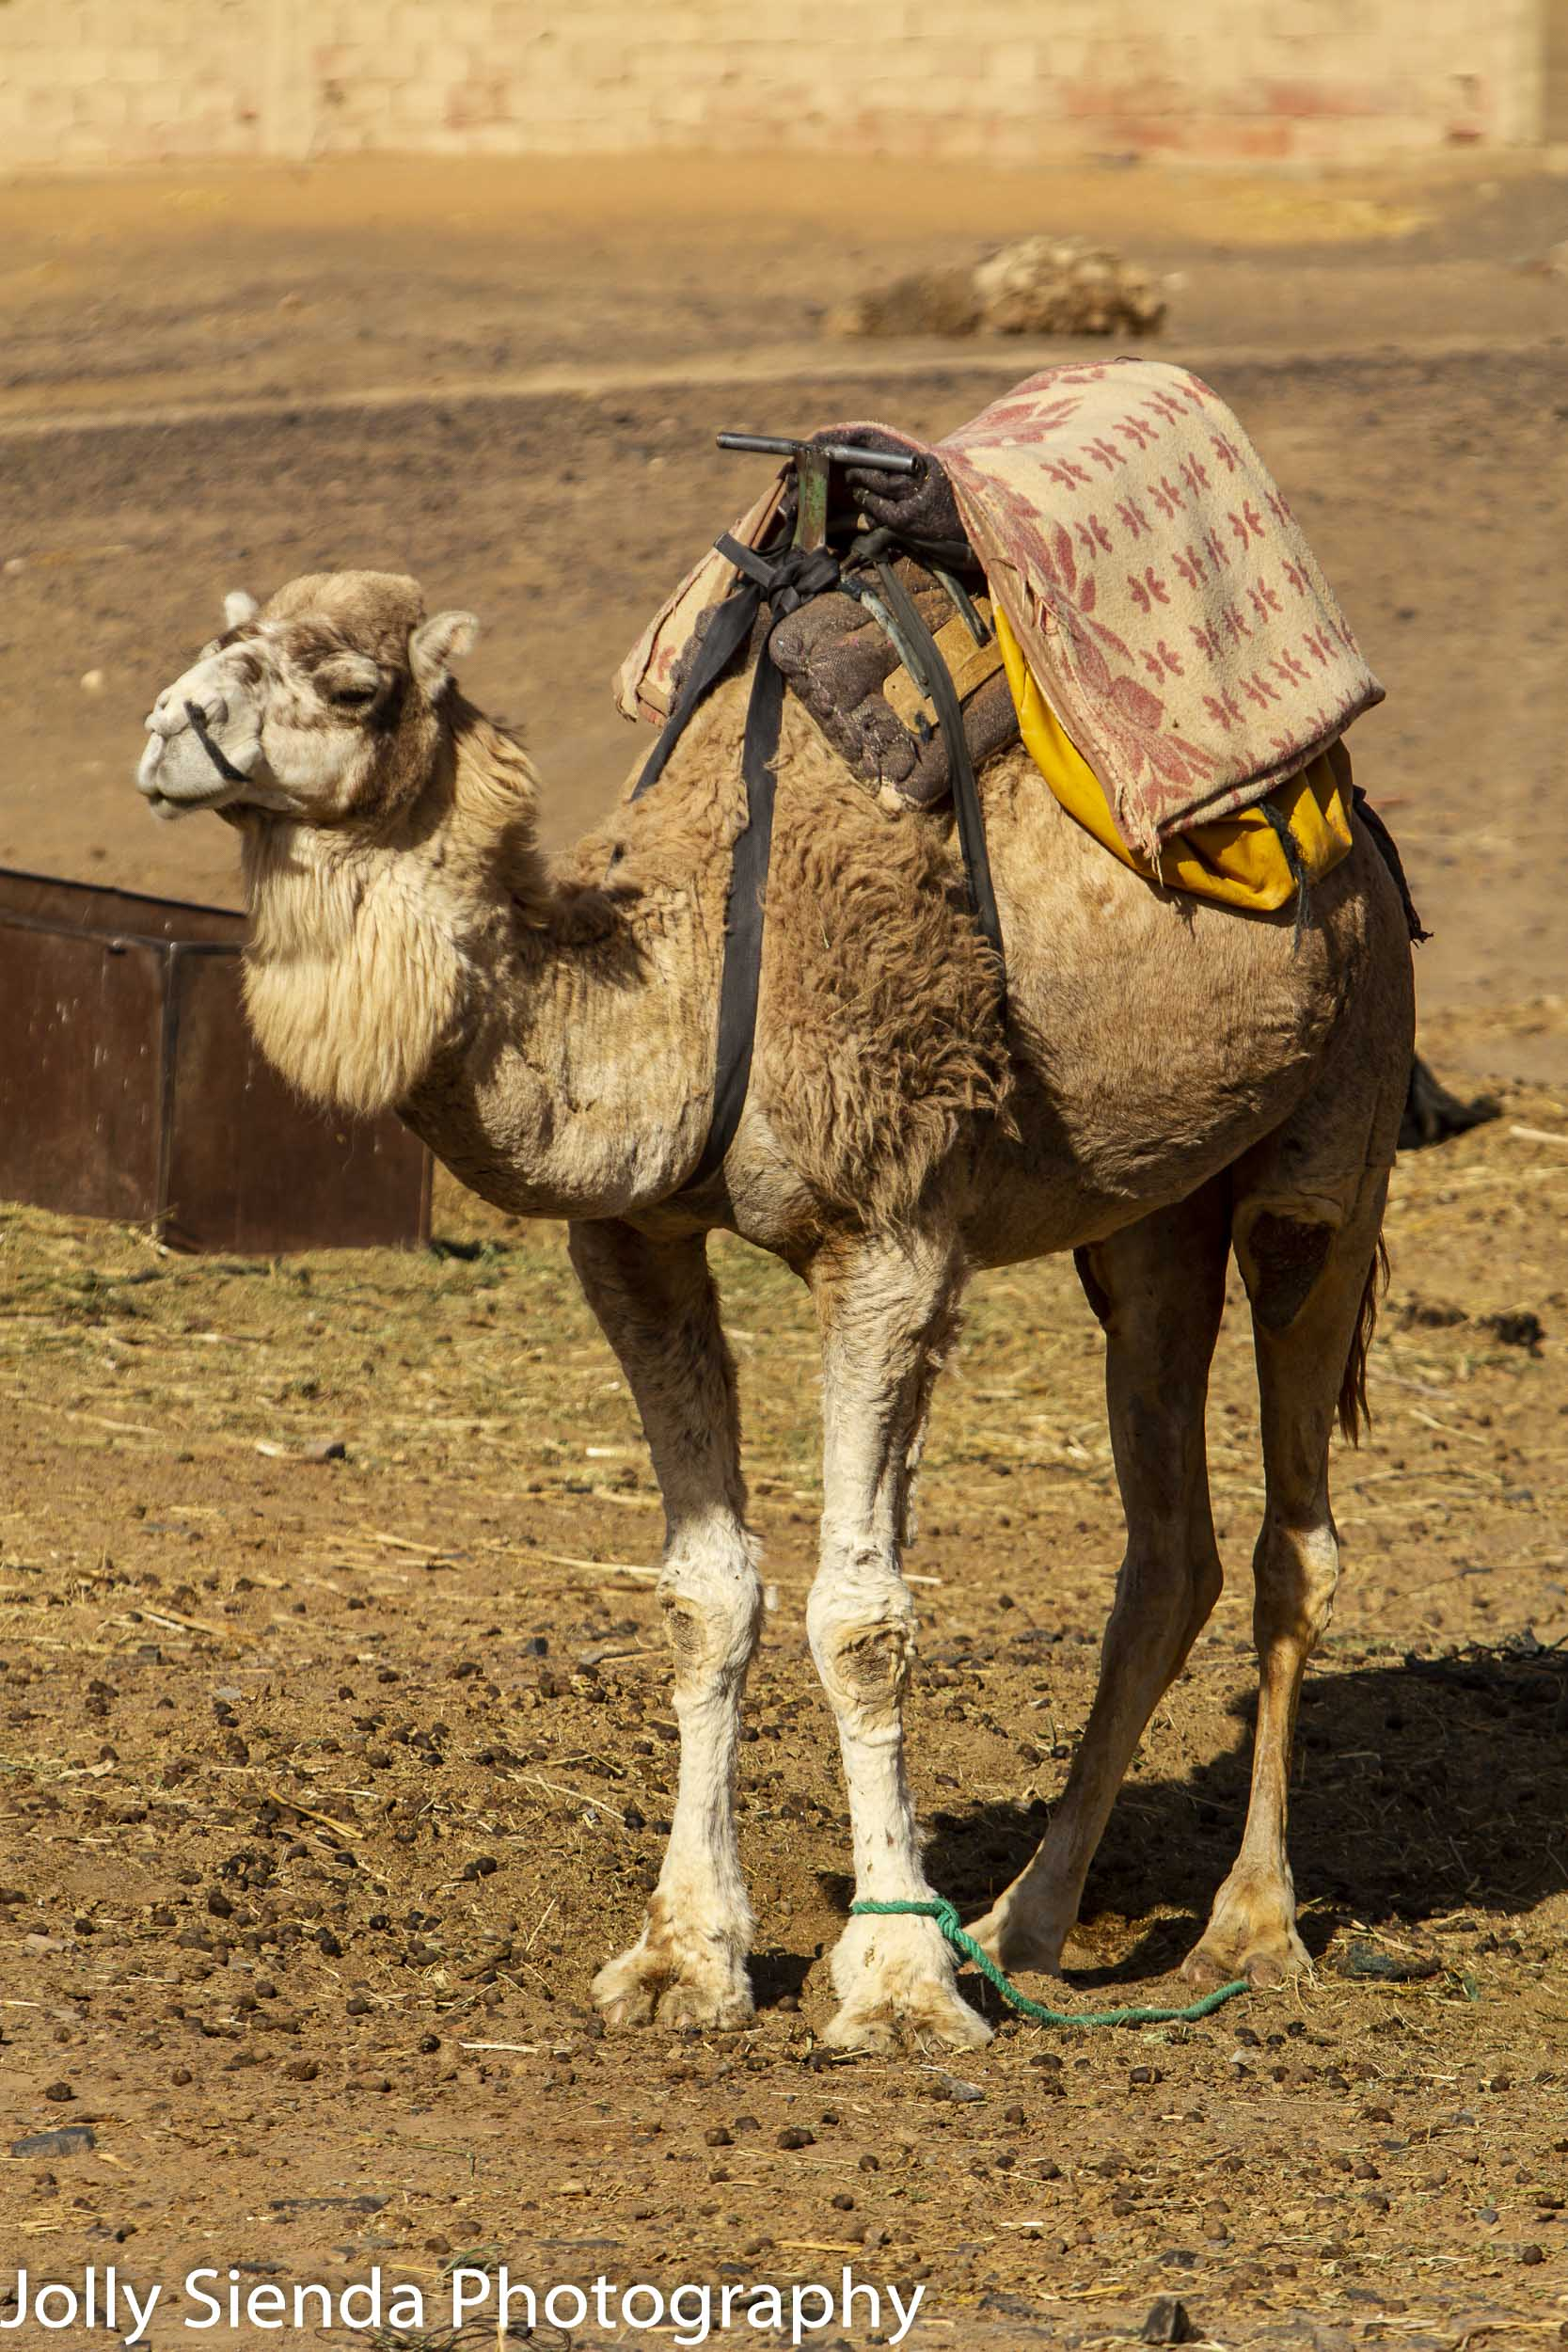 Camel wears a saddle